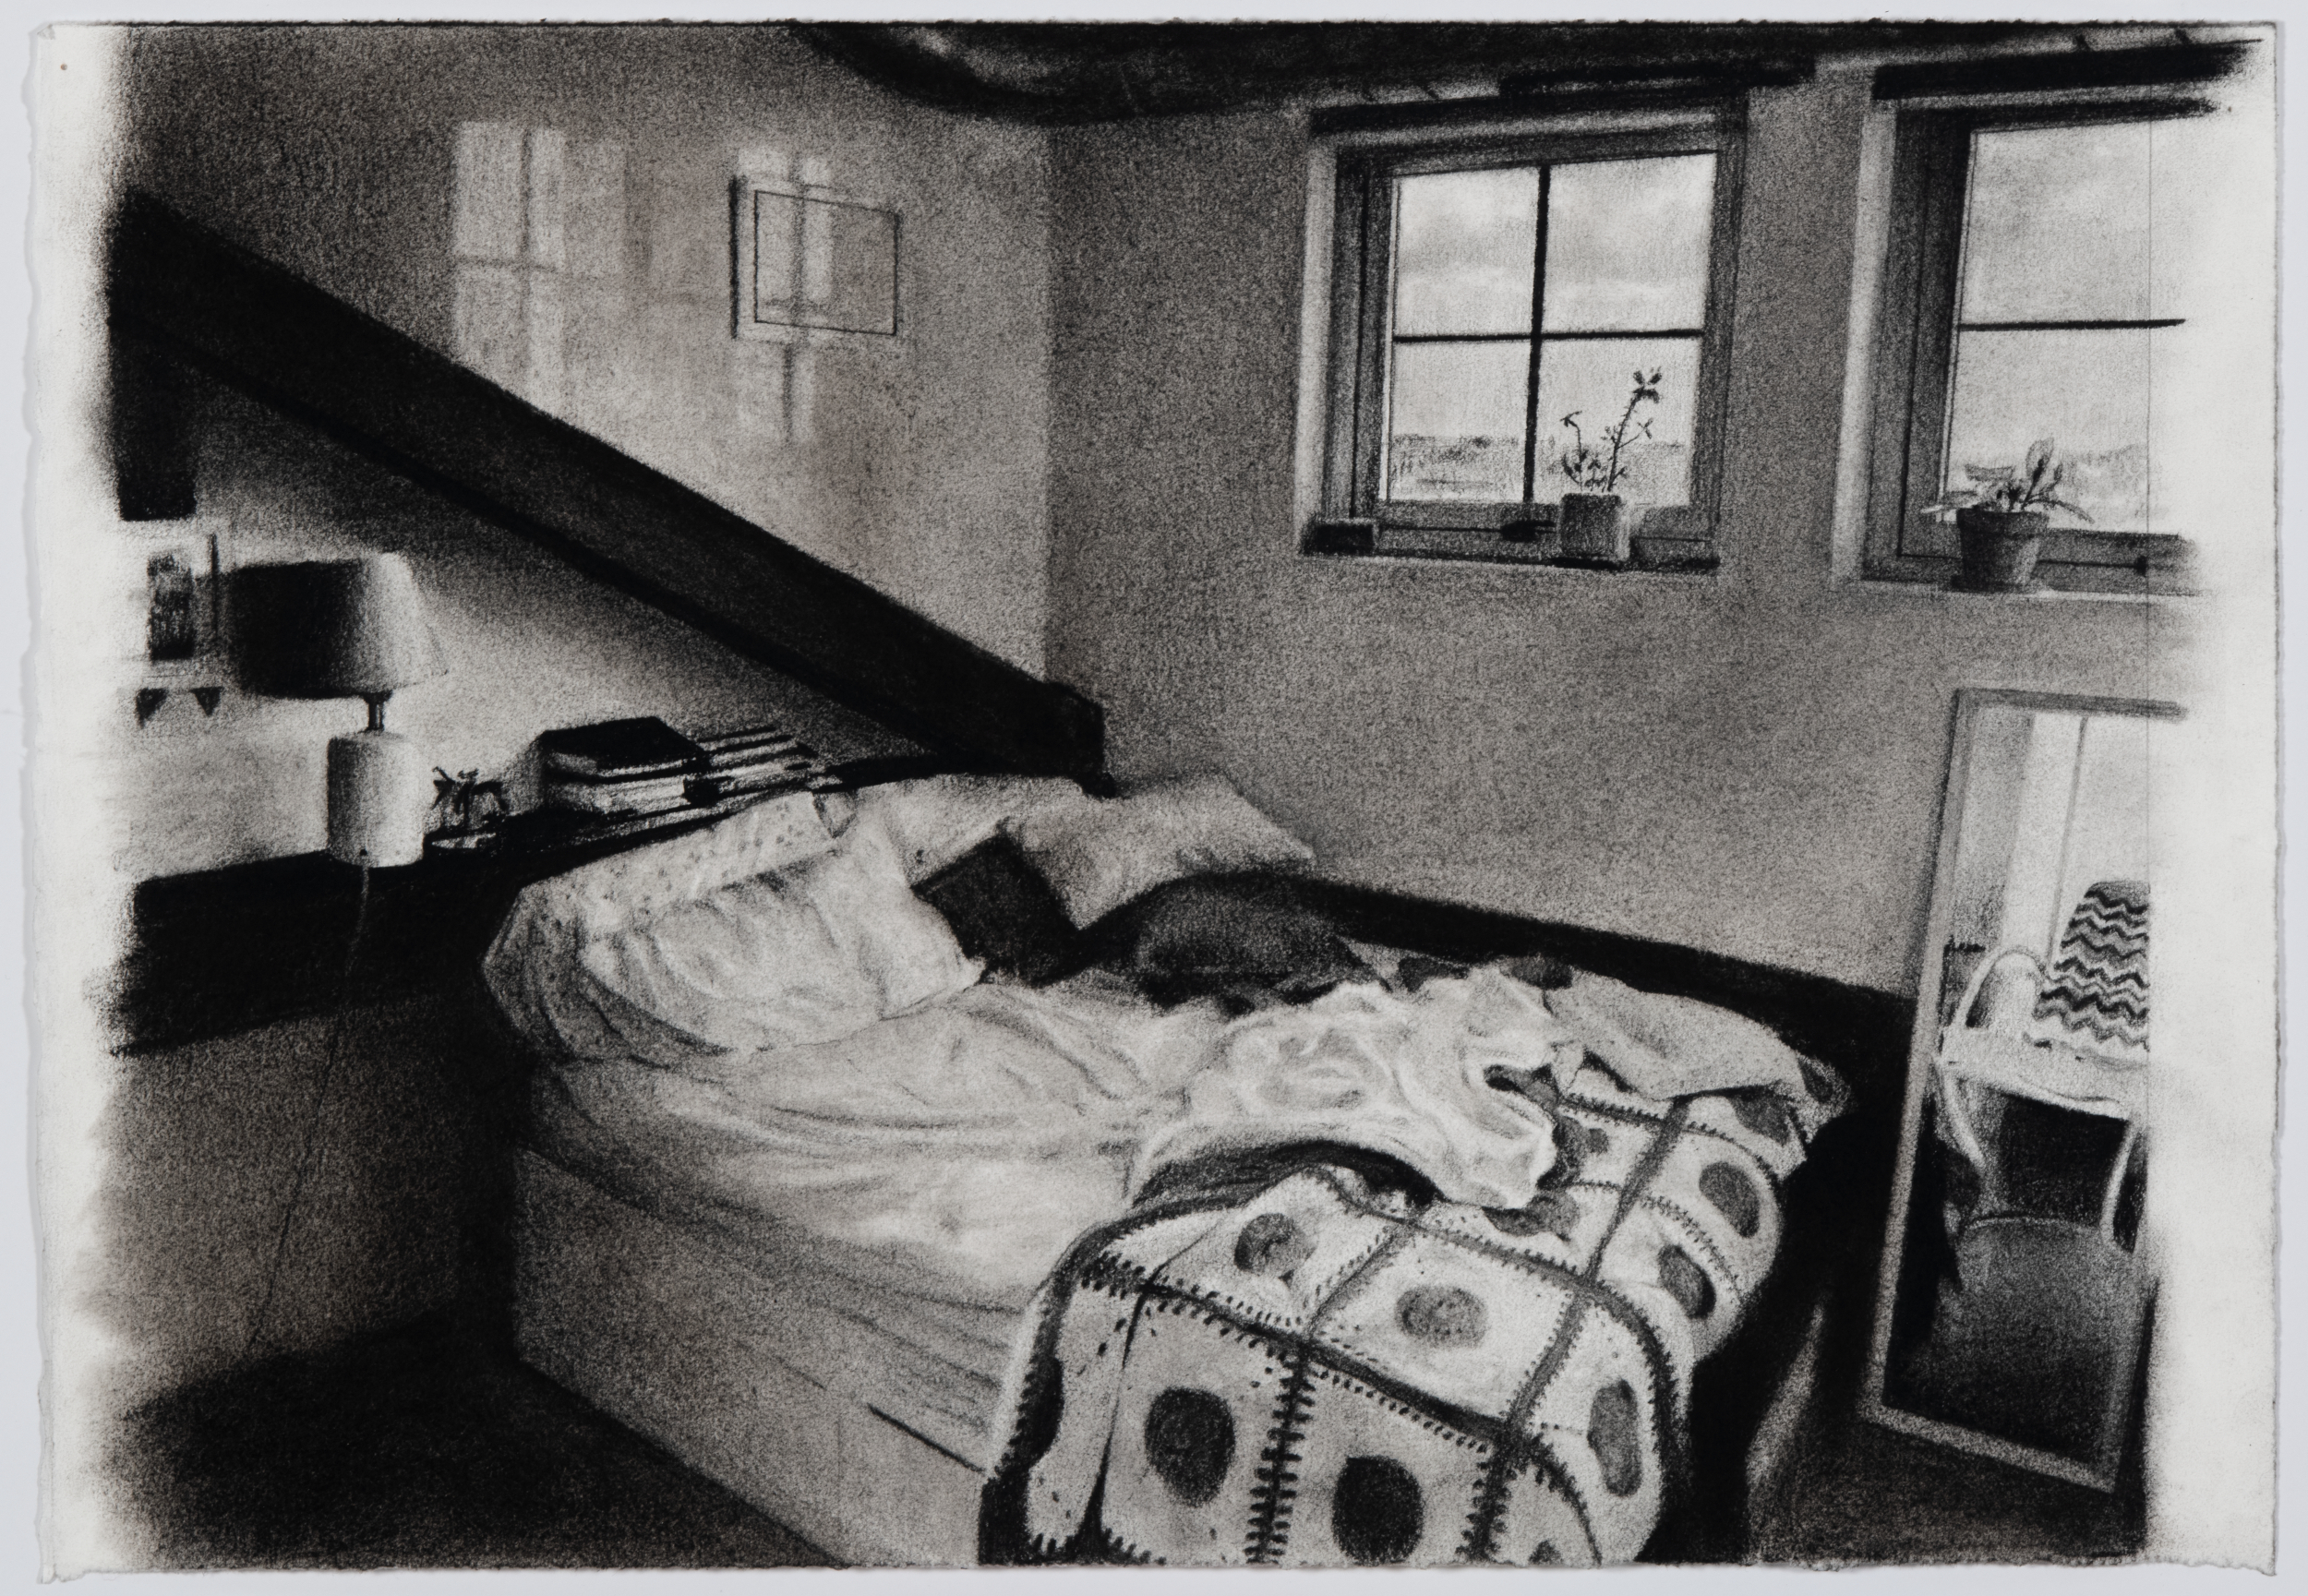 Charcoal drawing of bedroom